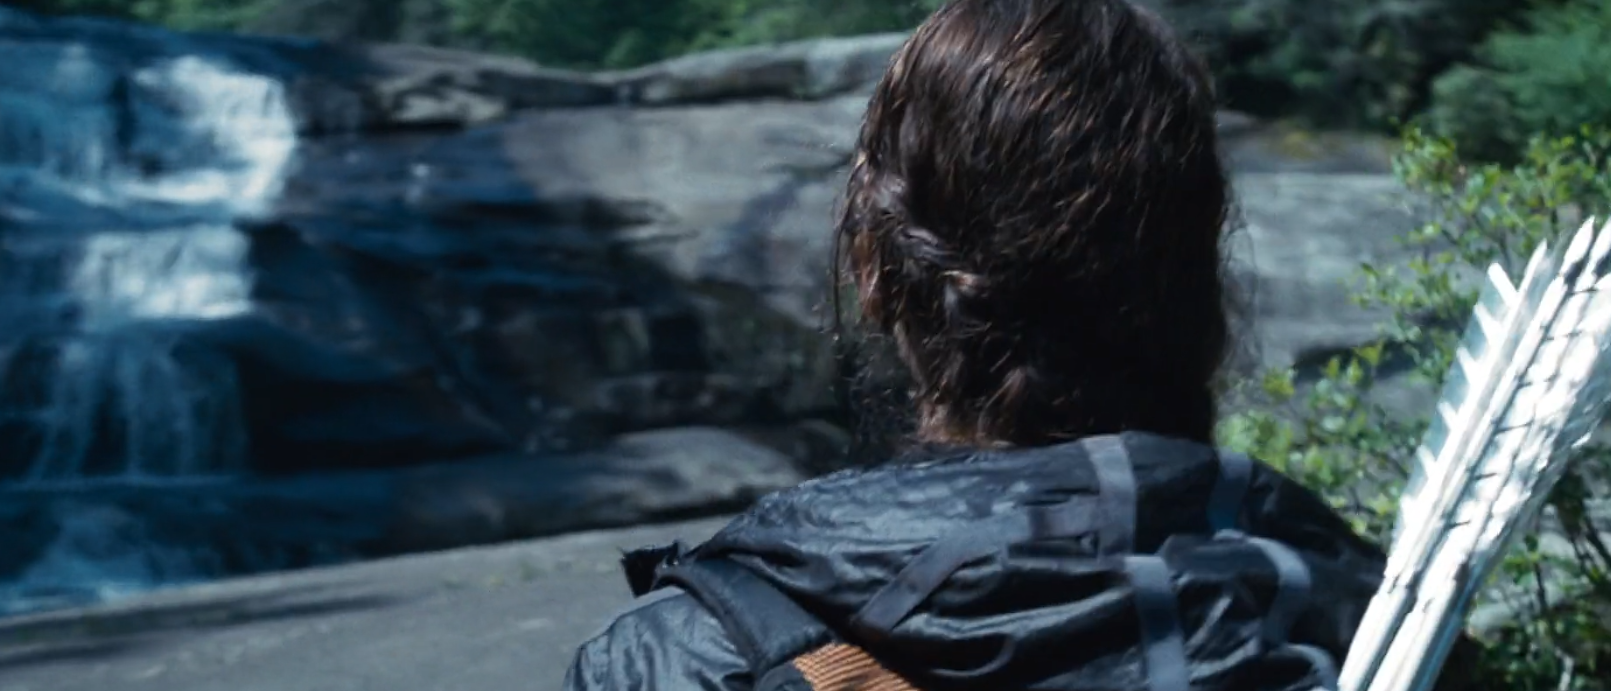 Jennifer Lawrence Katniss hunger games sporty braid back of head